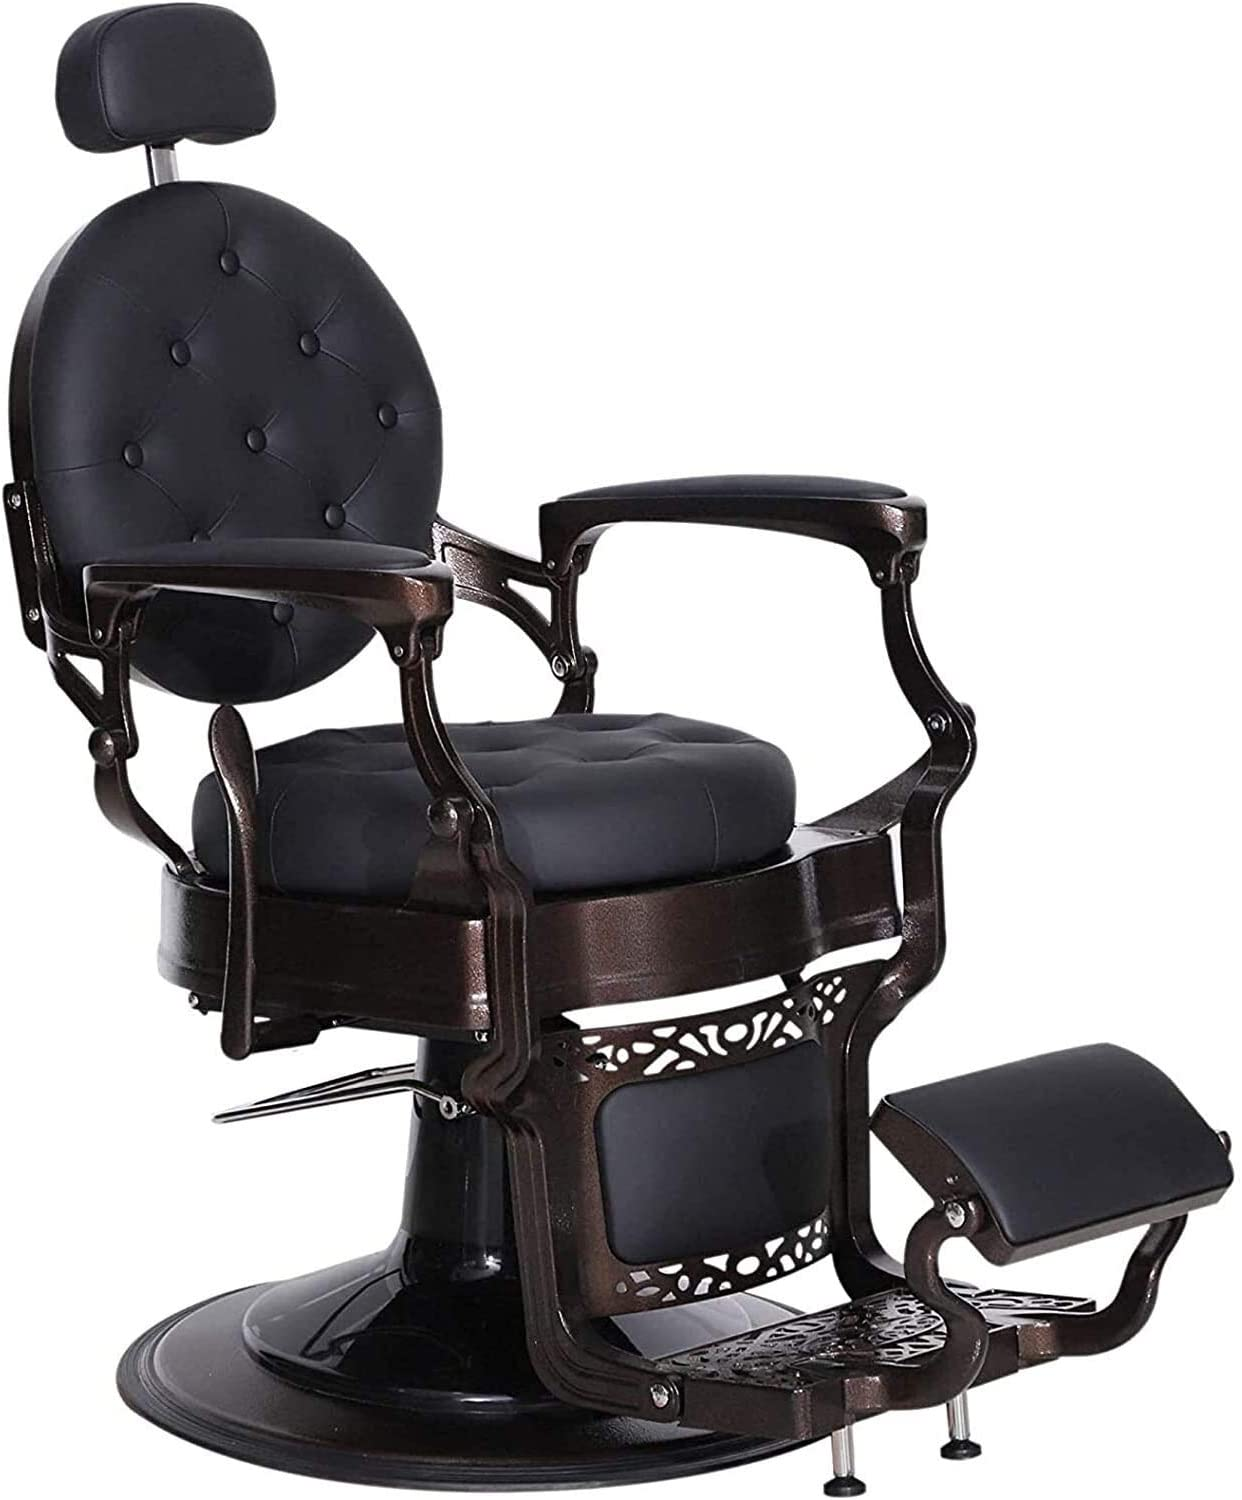 Vintage Salon Chair Max 49% OFF Hydraulic Cha Beauty Barber Equipment Import